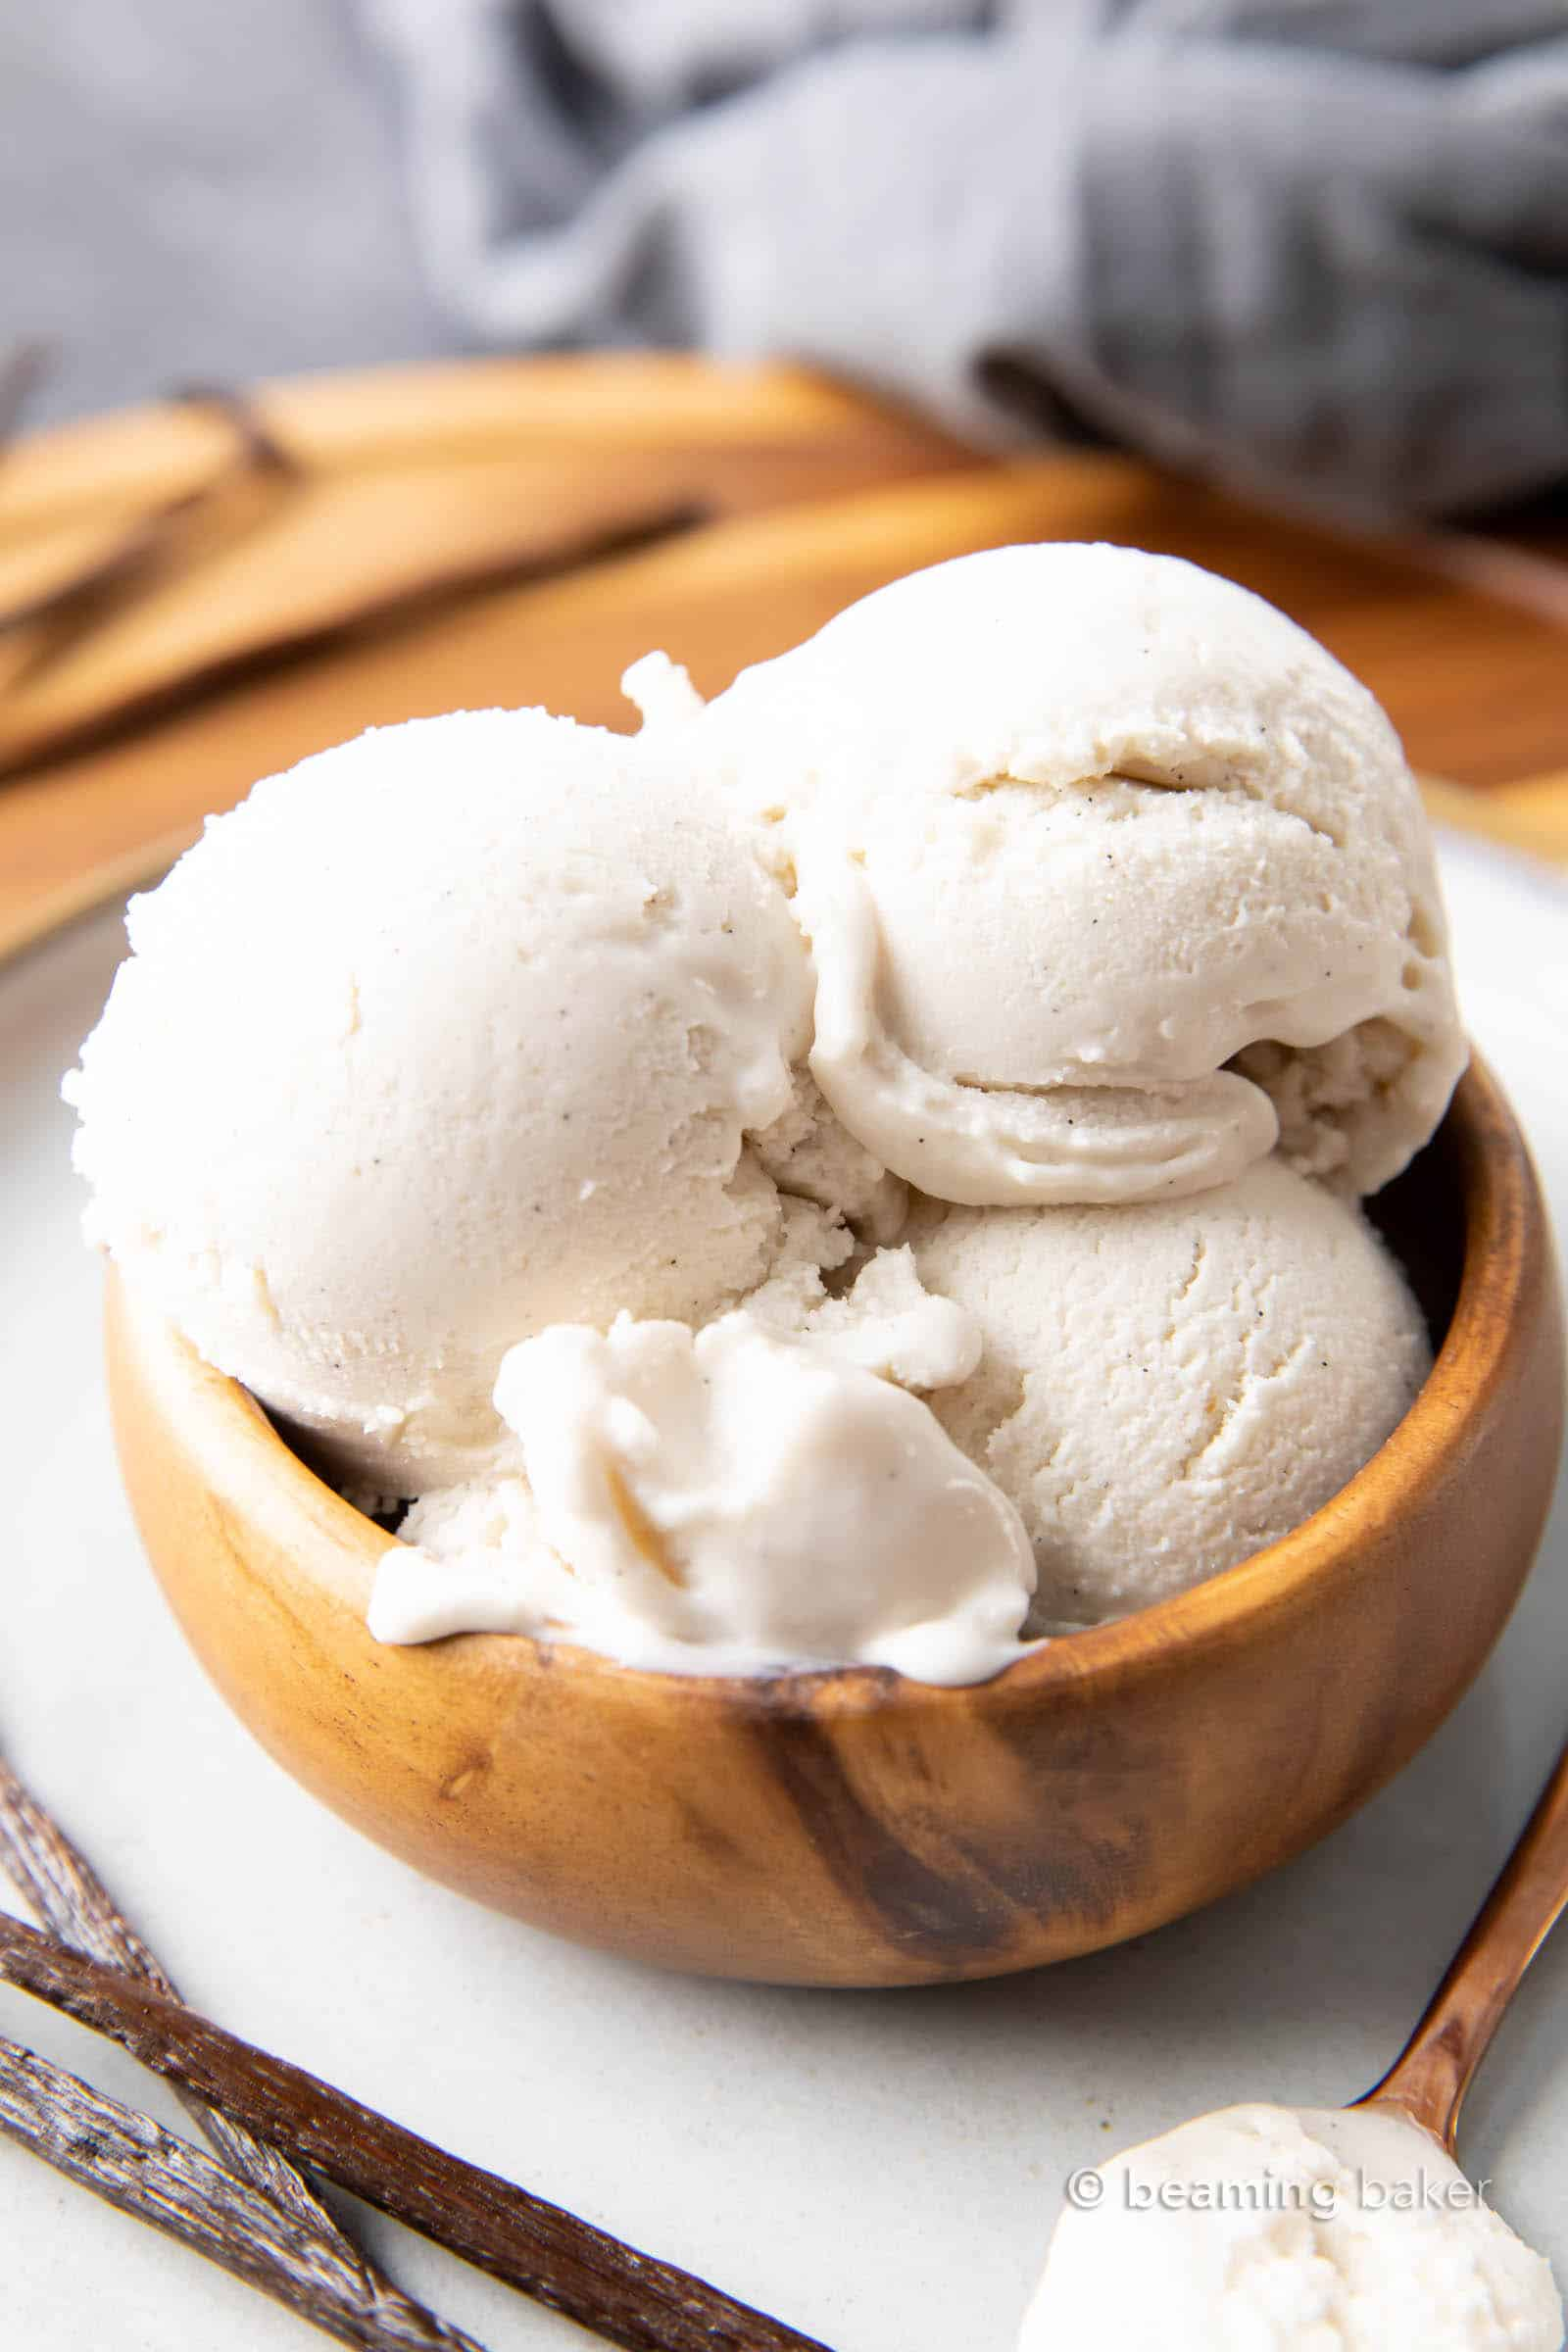 Vanilla Keto Ice Cream (Low Carb): this easy keto vanilla ice cream recipe is rich & creamy with delicious vanilla flavor! The best vanilla keto ice cream recipe—low carb, easy keto-friendly ice cream maker recipe, dairy-free! #KetoDessert #KetoIceCream #LowCarb #LowCarbIceCream #IceCream | Recipe at BeamingBaker.com